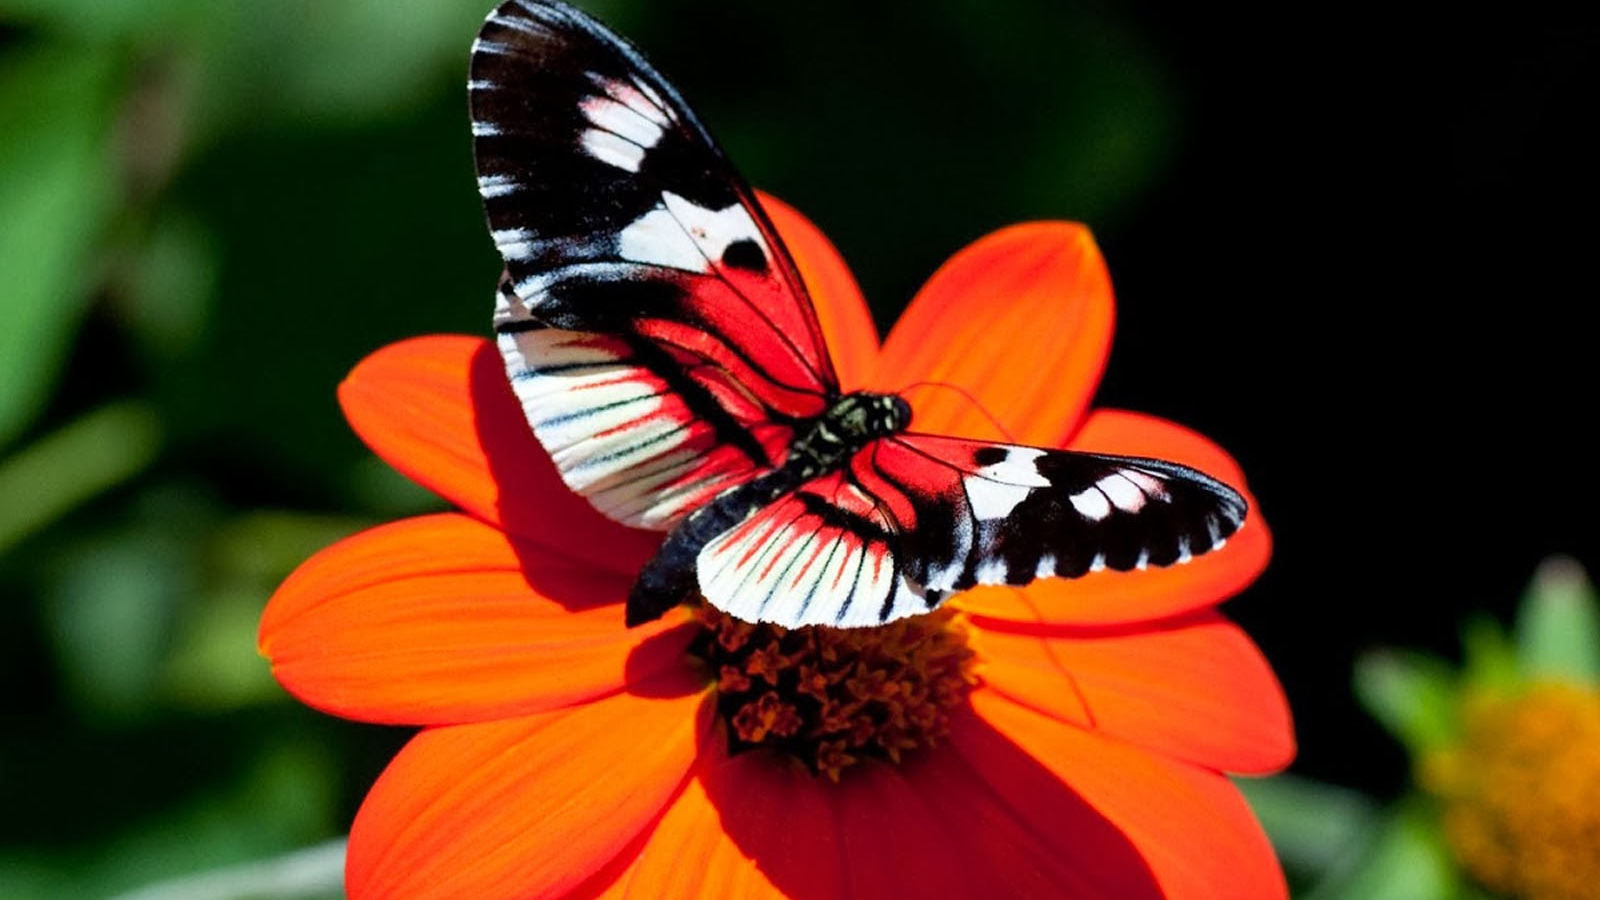 Free Download Tag Butterfly Desktop Backgrounds Wallpapers Photosimages And 1600x1200 For Your Desktop Mobile Tablet Explore 46 Free Desktop Wallpaper Butterflies Flowers Butterfly Wallpapers For Laptop Butterflies And Flowers Wallpaper